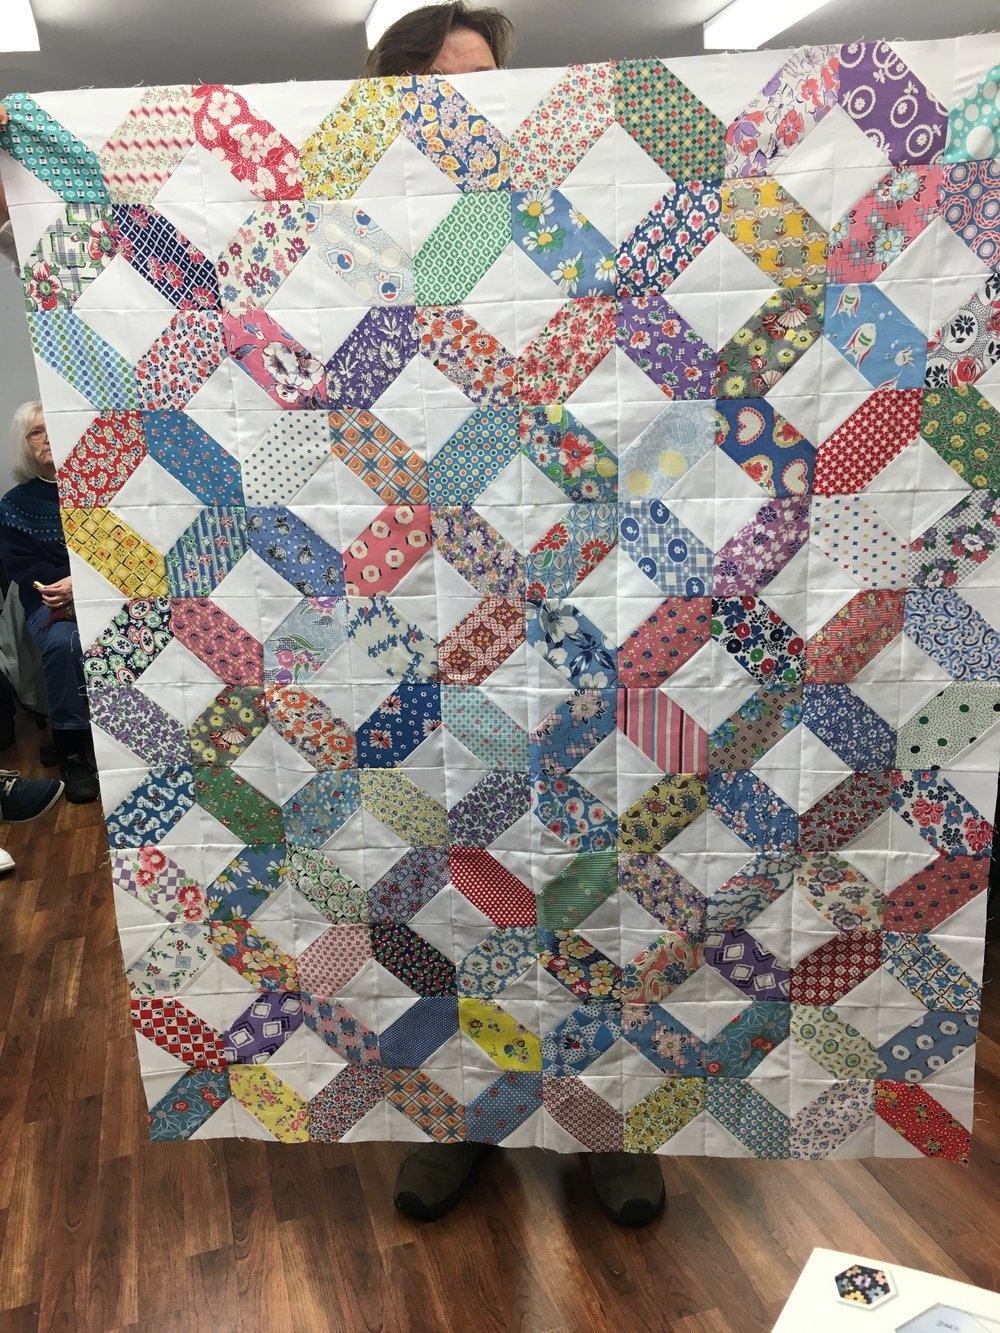 Connie always steals the show with her scrap quilts. A Feed sacks wonder.